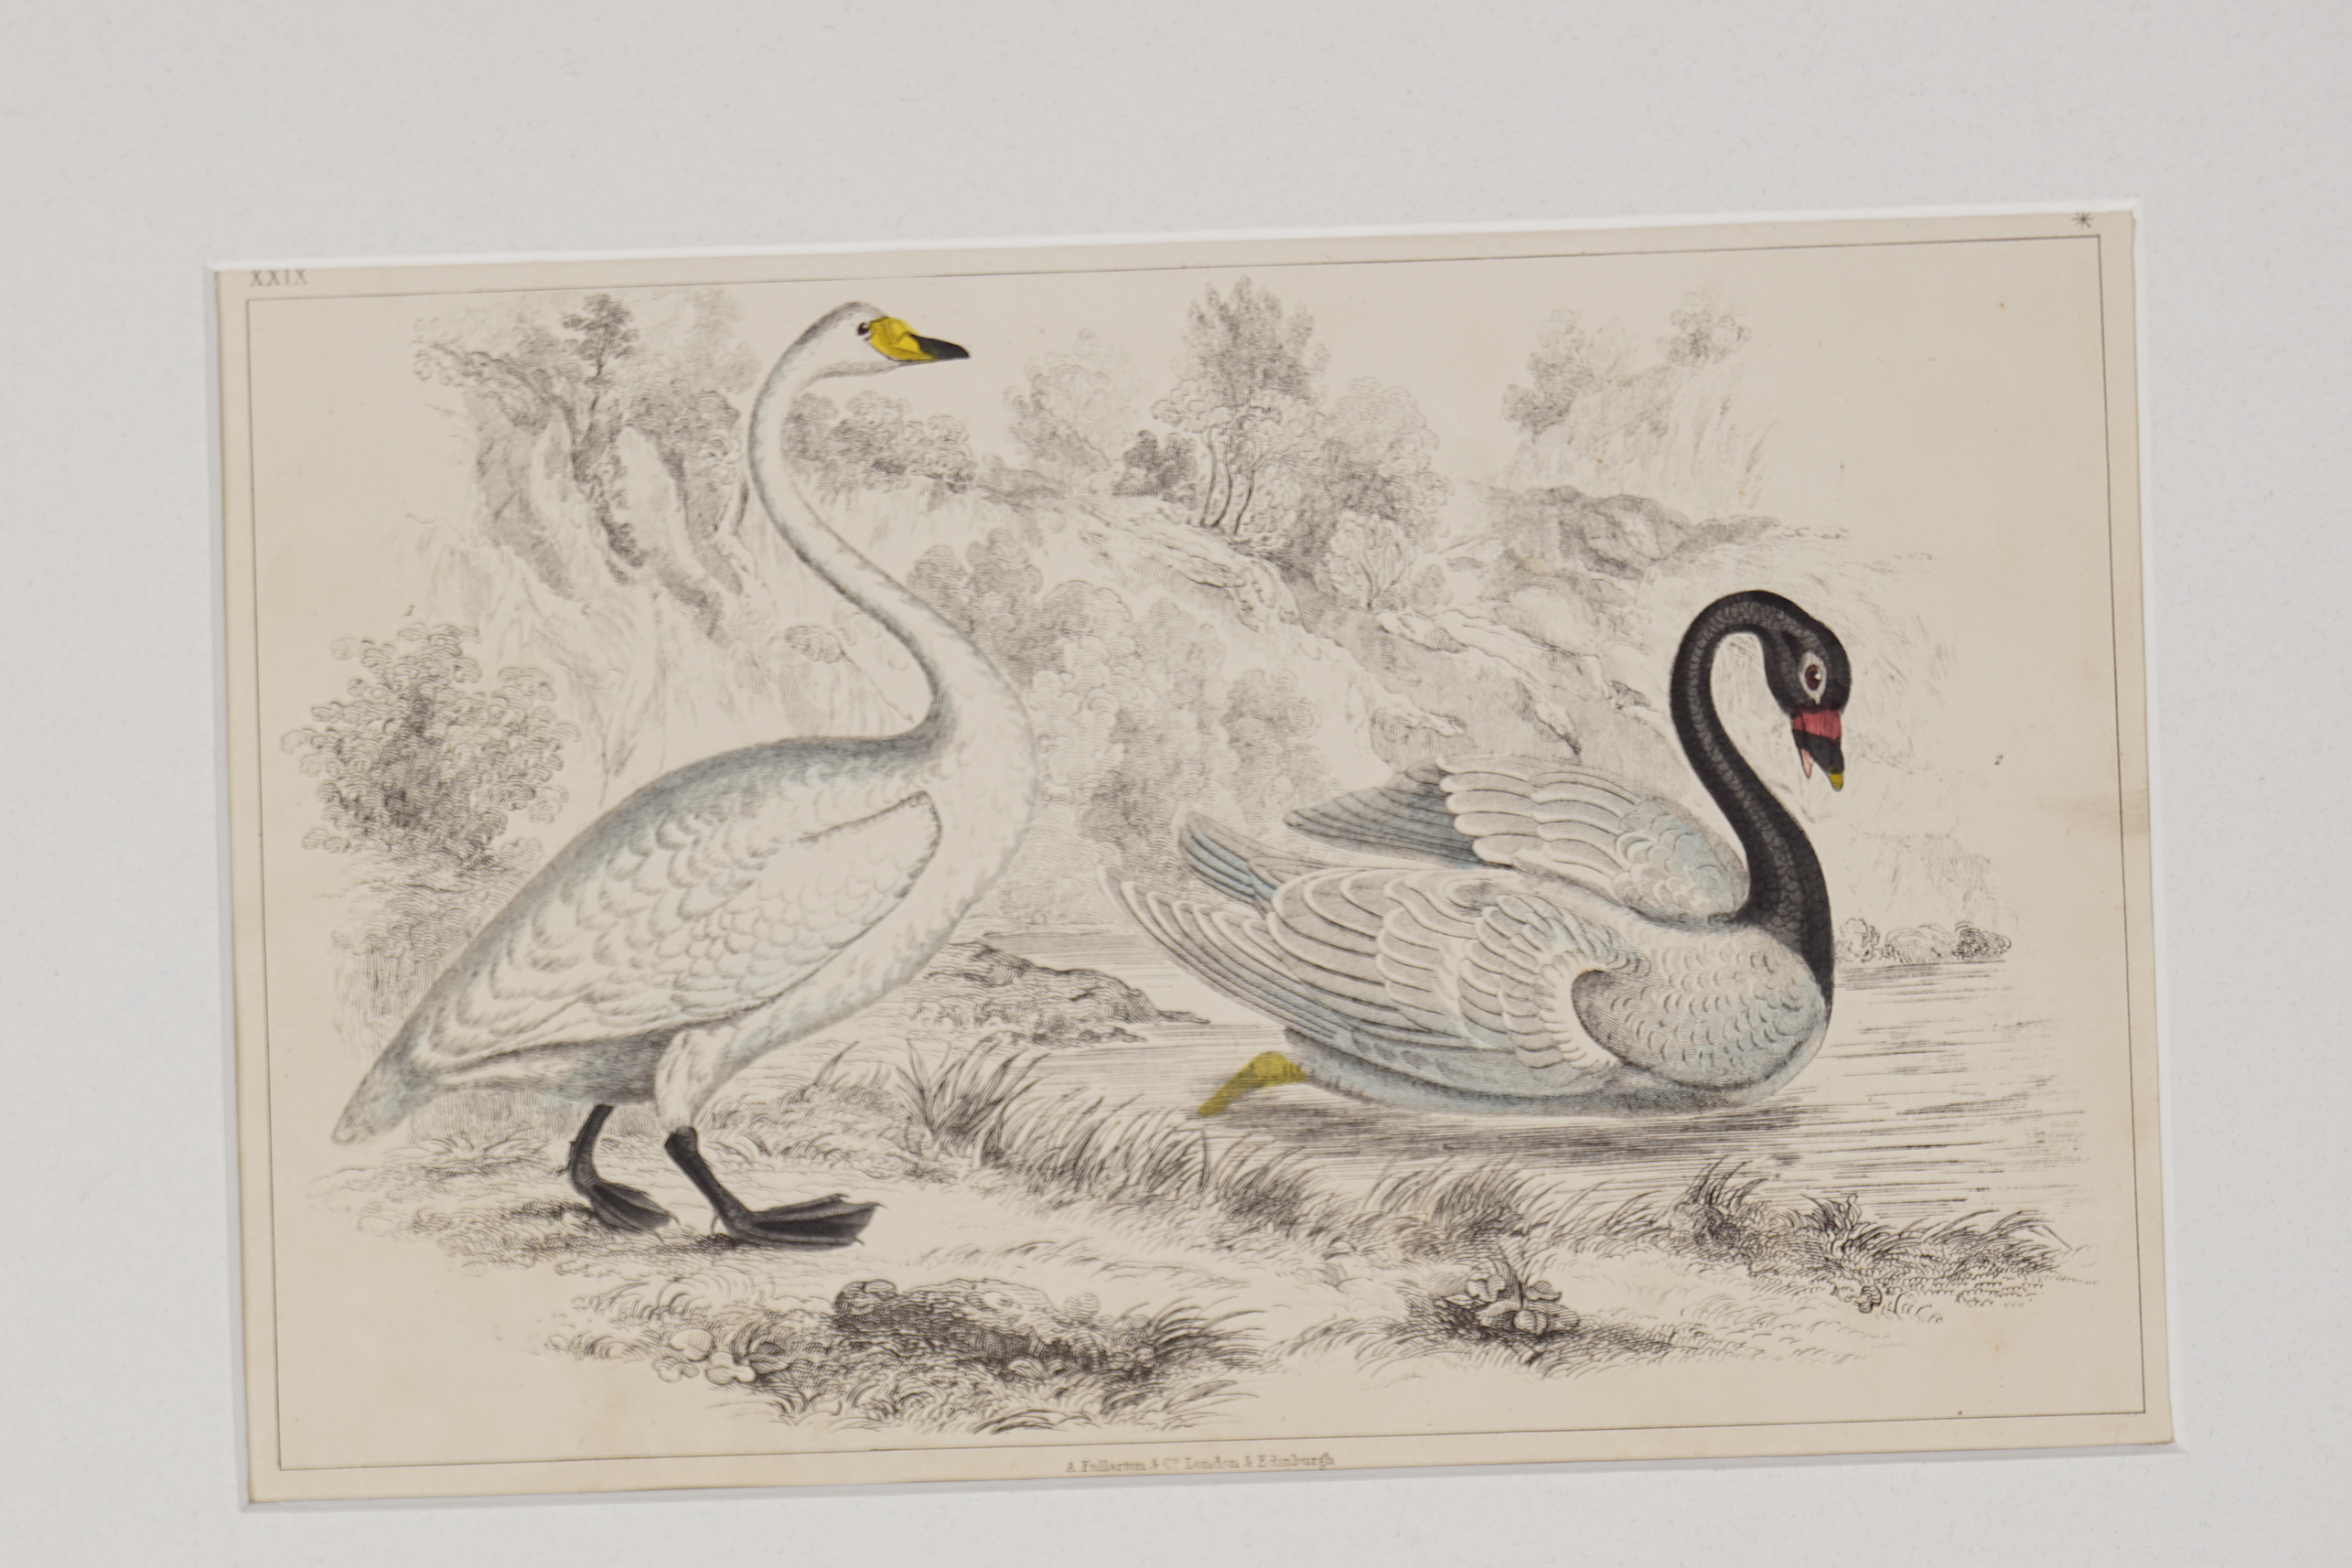 SET OF 4 18TH-CENTURY HAND COLOURED PRINTS - Image 5 of 5